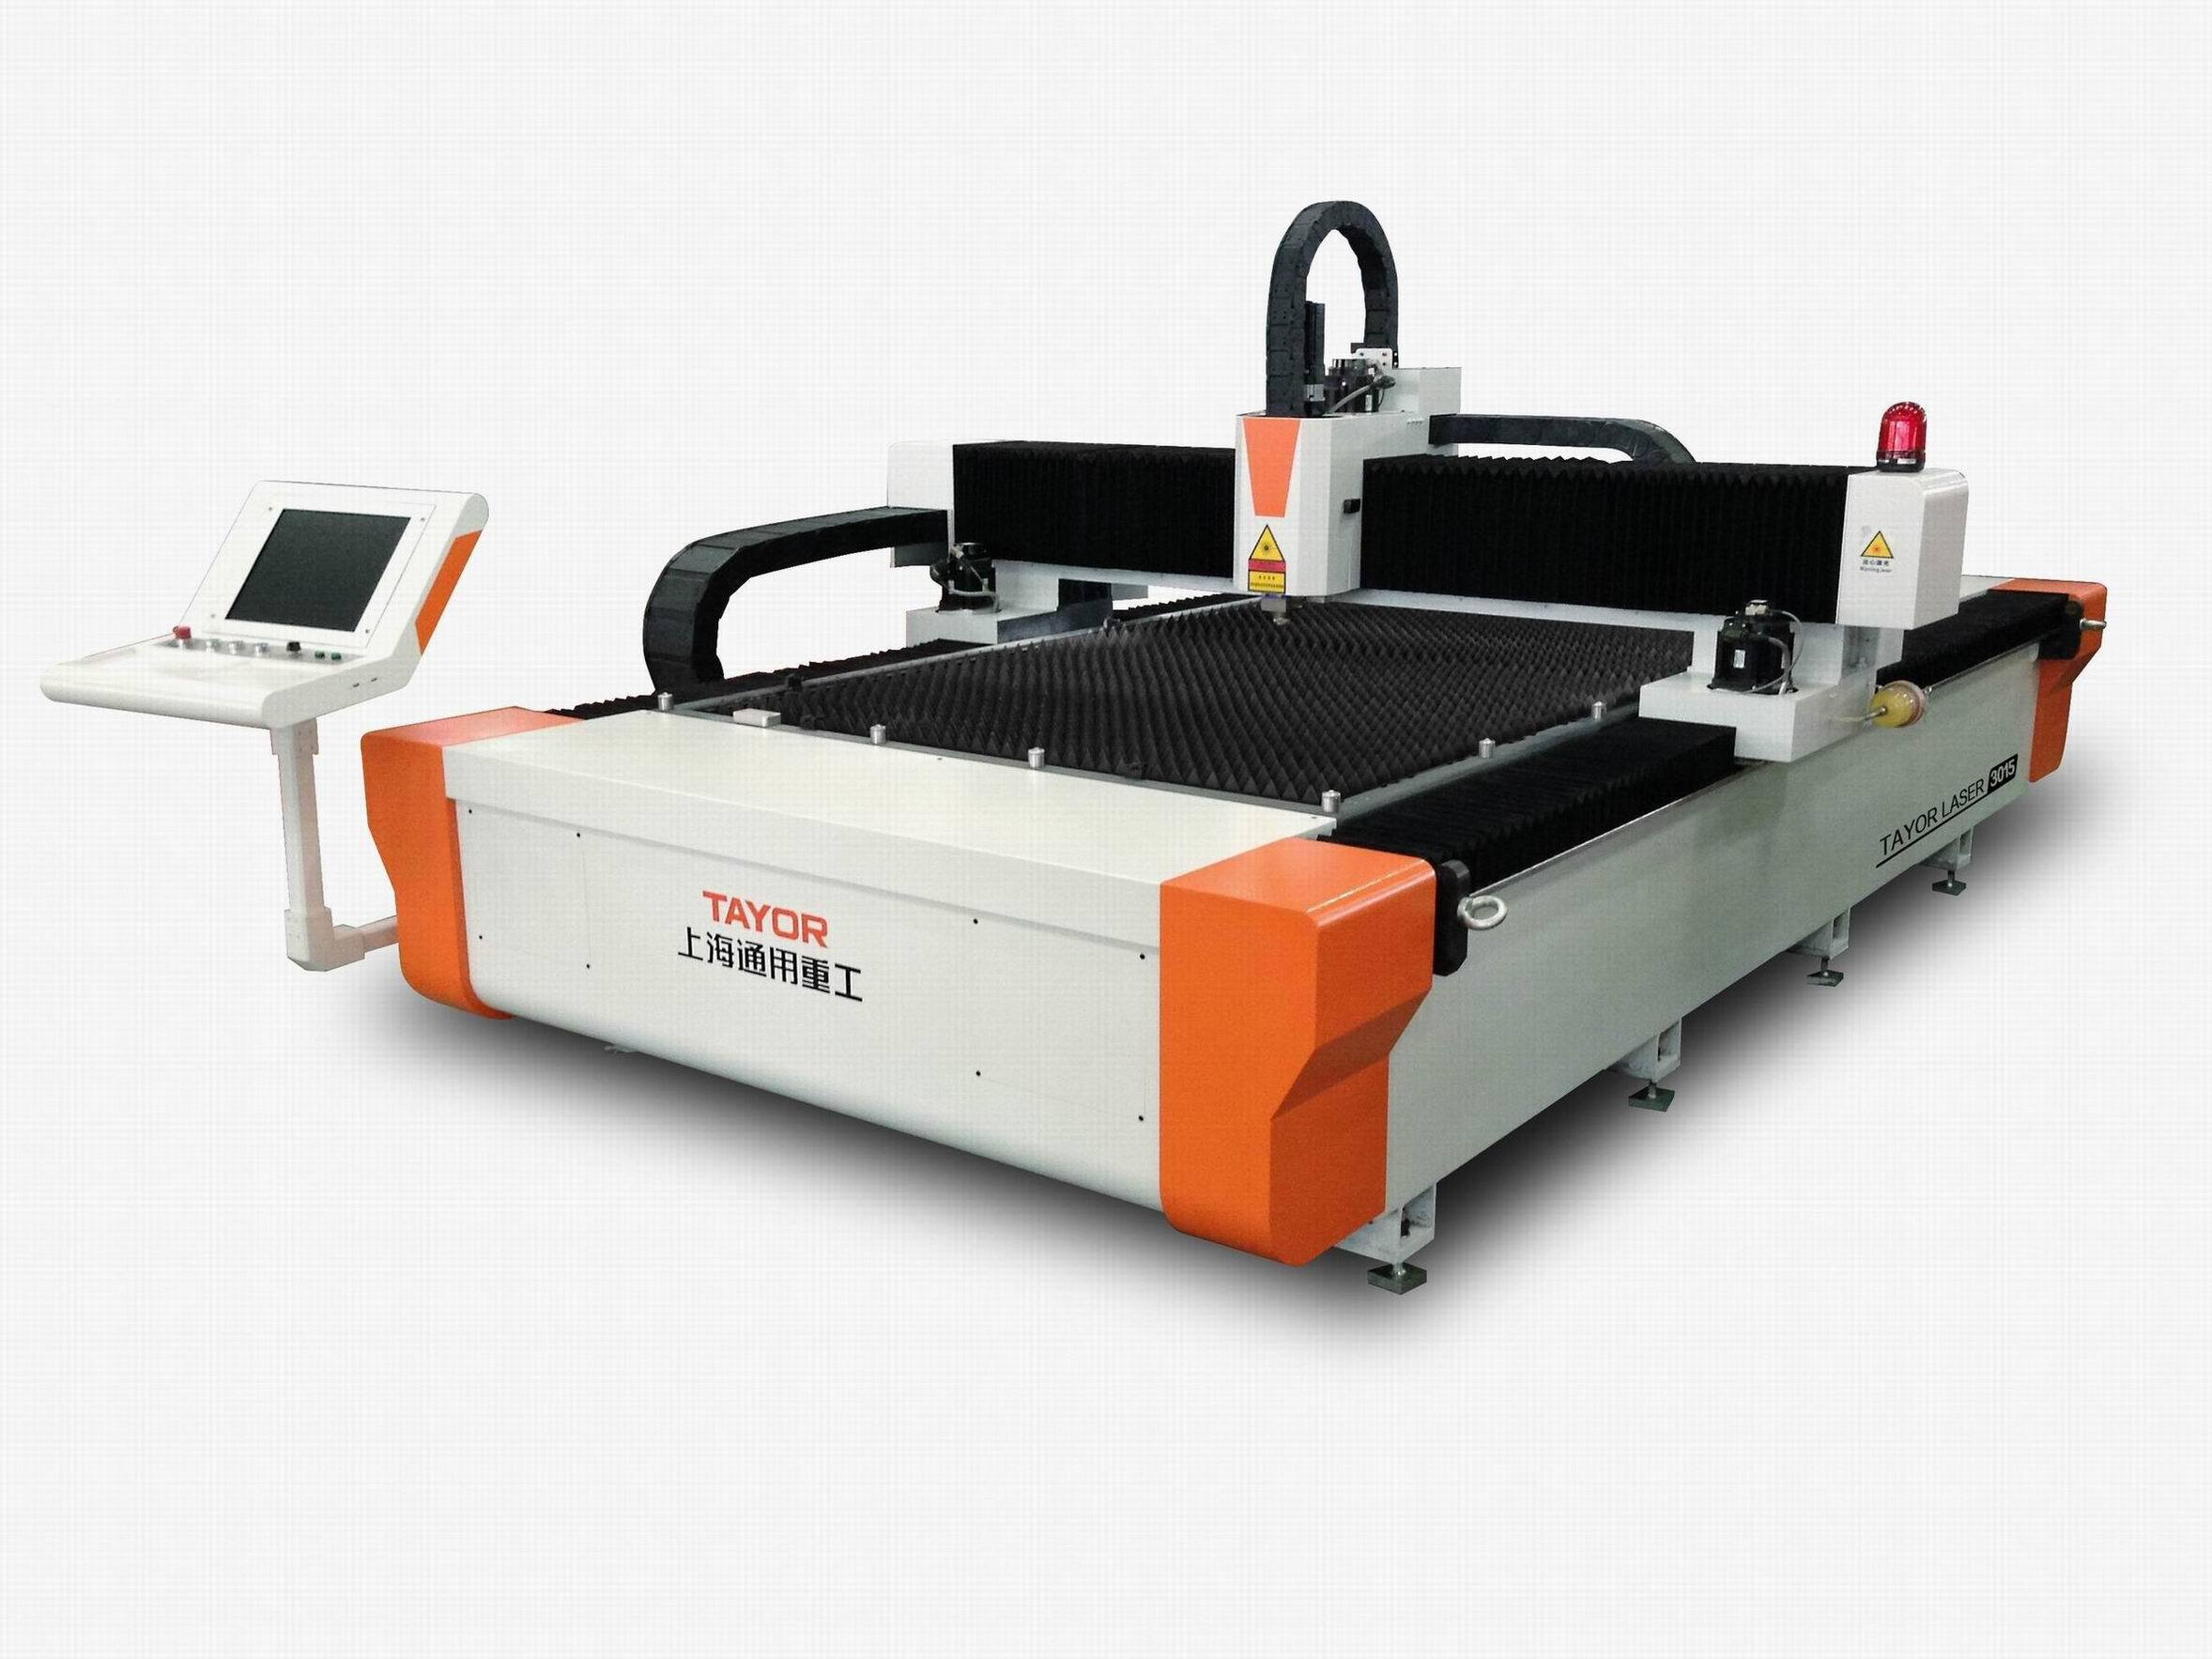 500W, 1000W, 2000W, 4000W Ipg CNC Fiber Laser Cutting Machine